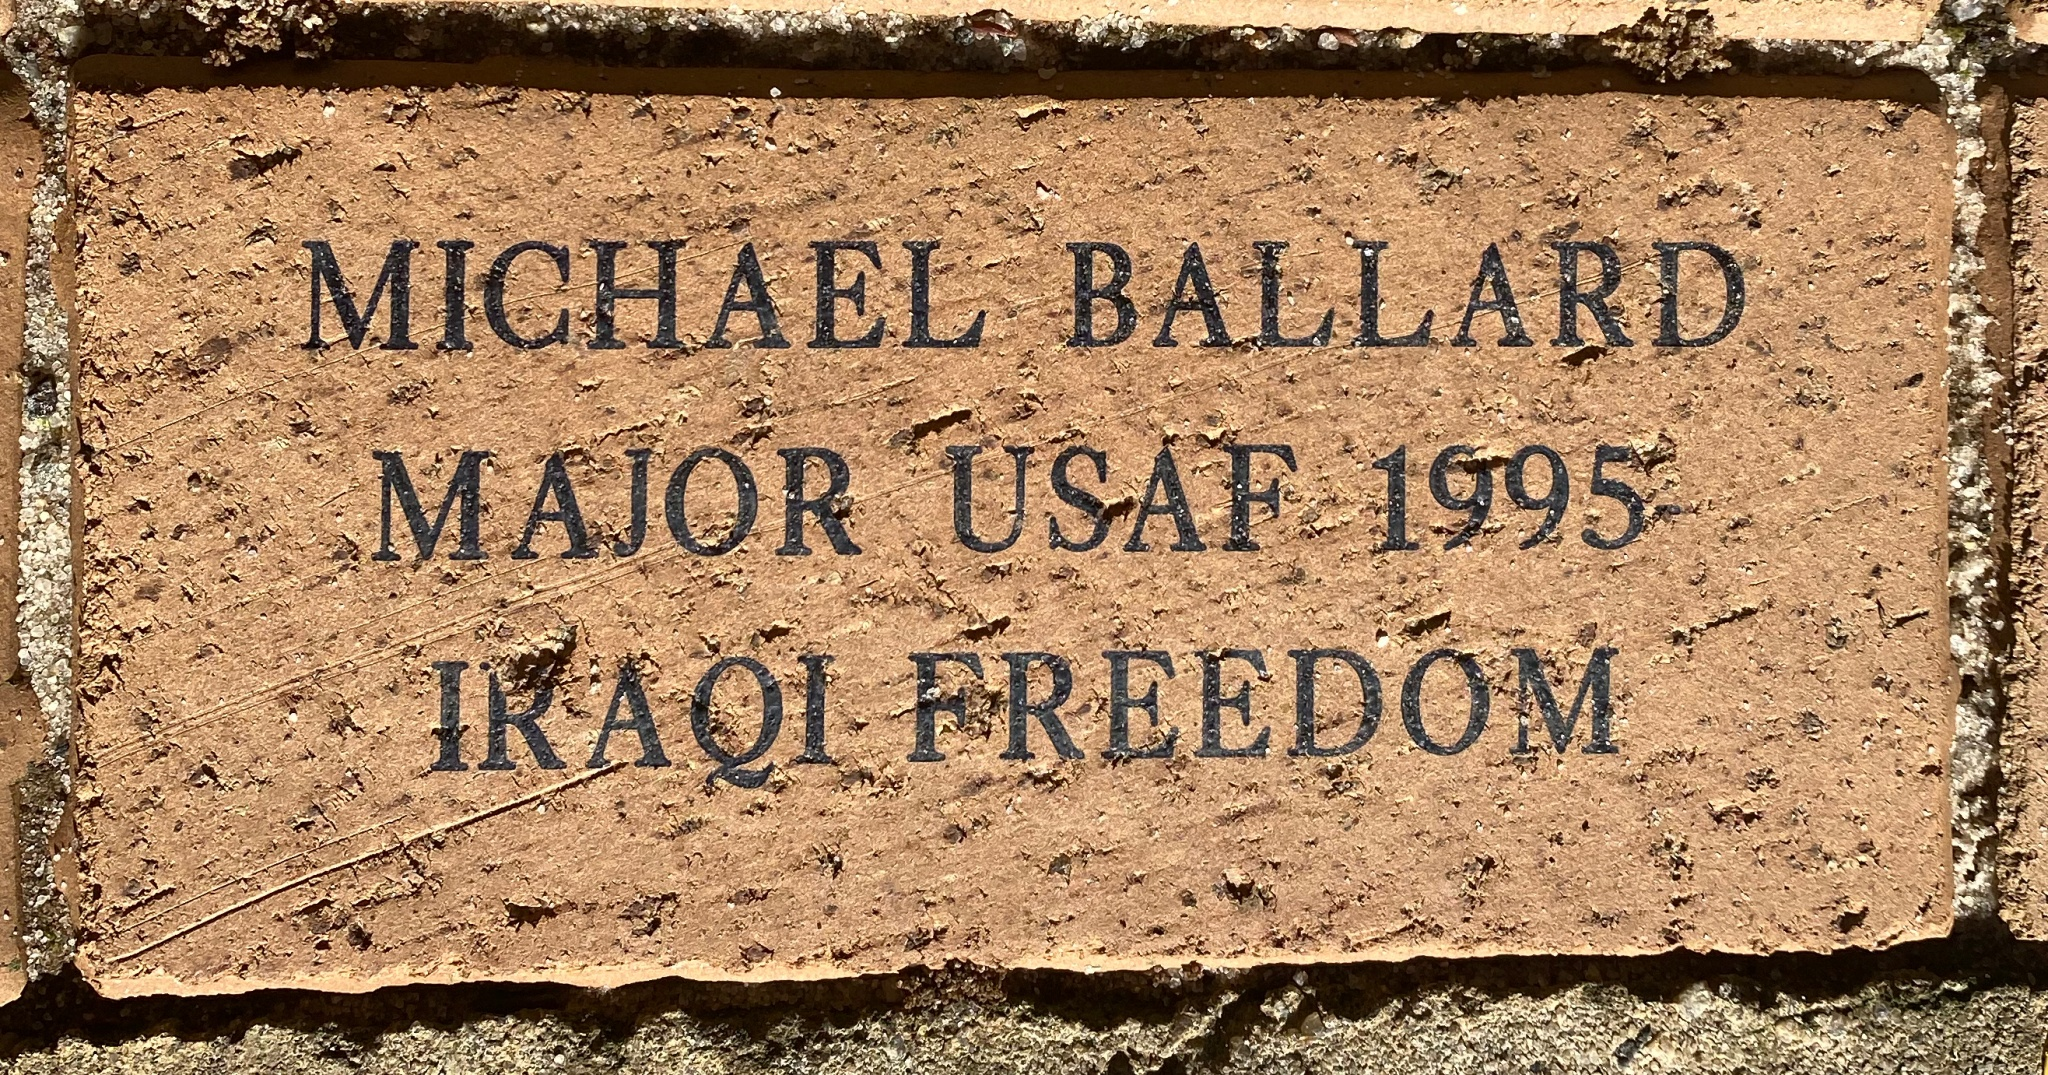 MICHAEL BALLARD MAJOR USAF 1995 IRAQI FREEDOM